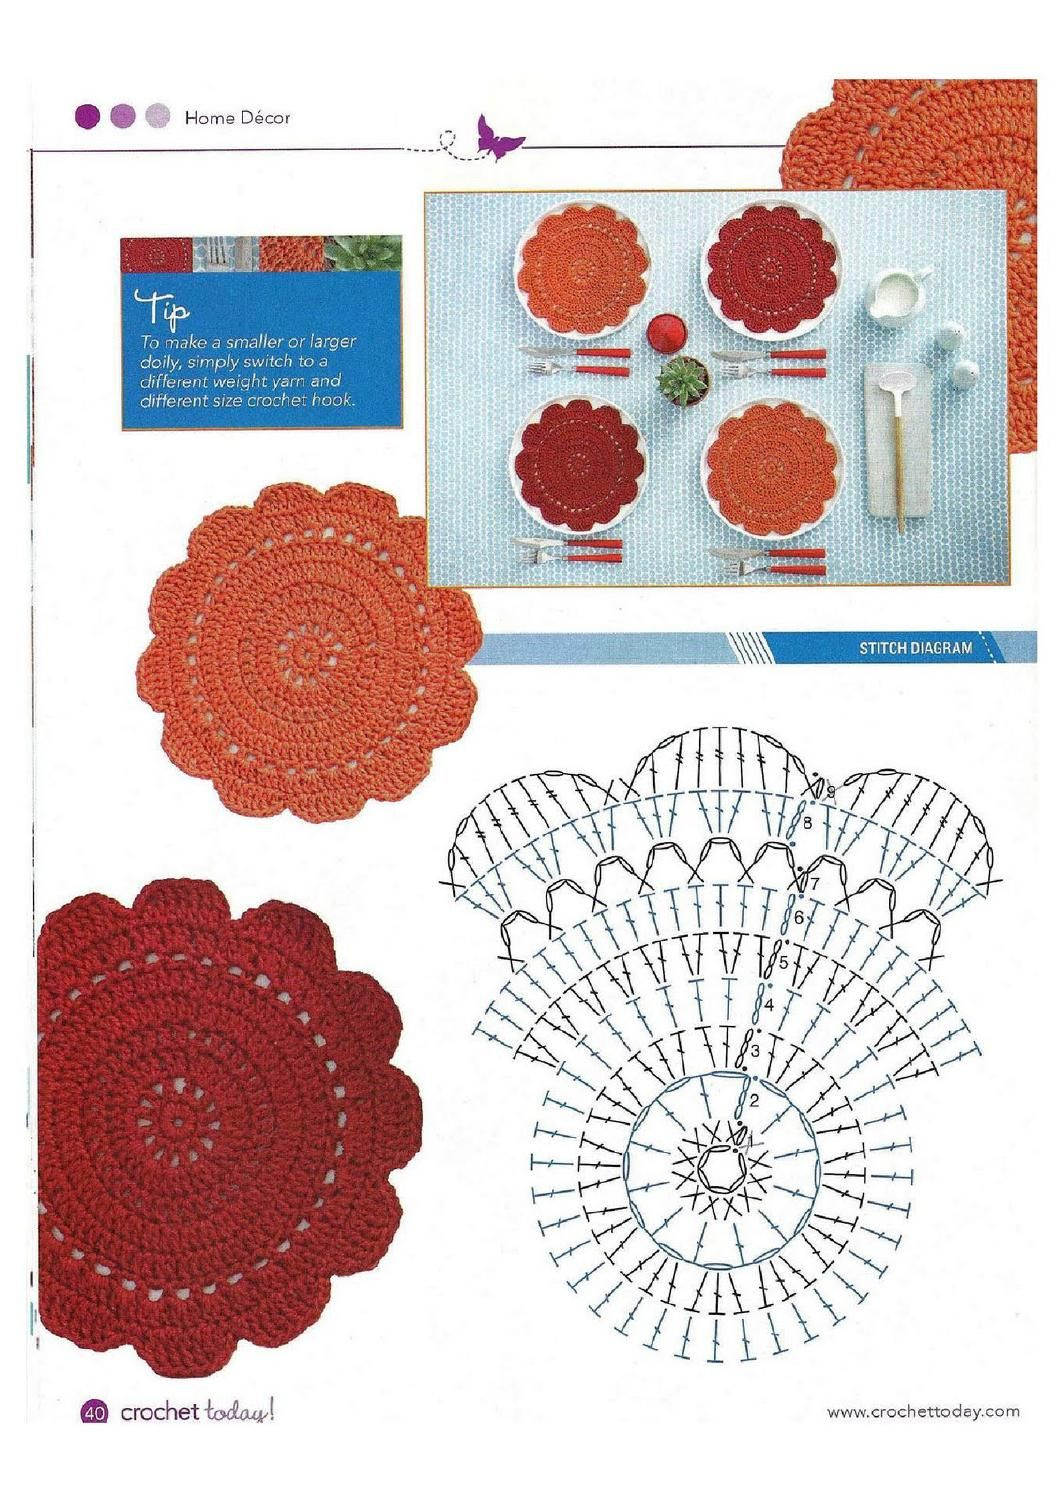 24 crochet today! march april 2010 di Dianne Guenther - issuu ...